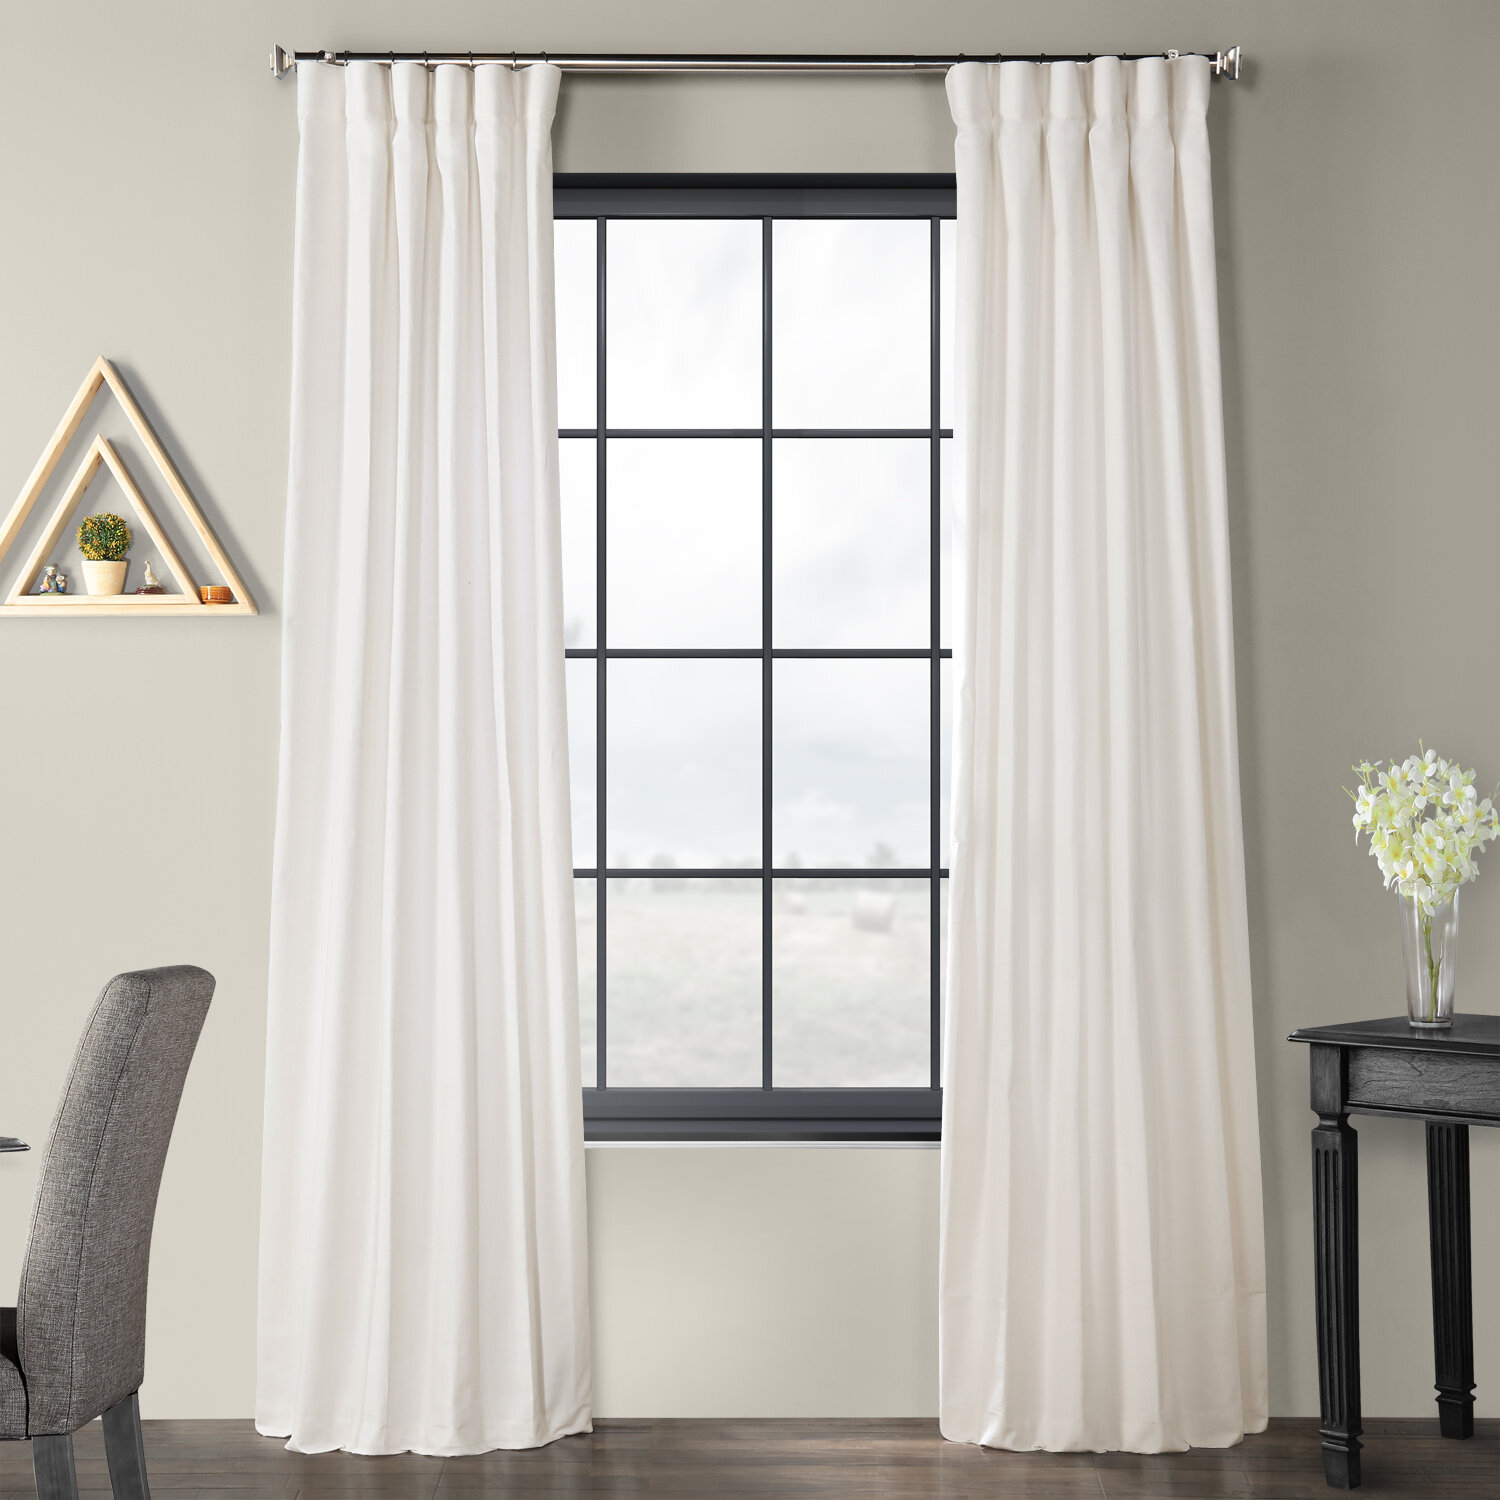 Sanger Solid Country Cotton Linen Weave Rod Pocket Single Curtain Panel Regarding Solid Country Cotton Linen Weave Curtain Panels (View 3 of 30)